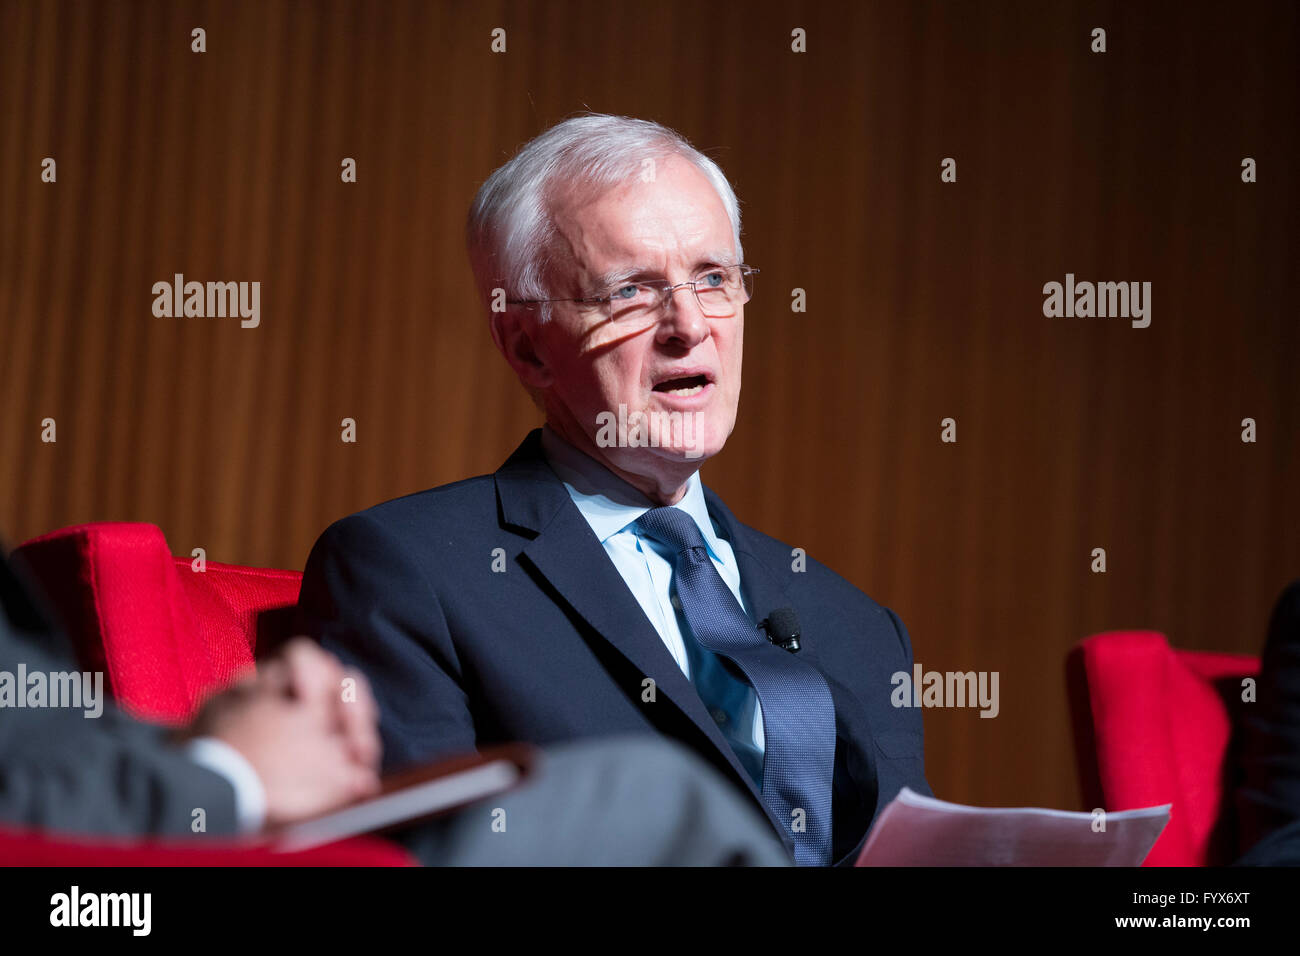 Medal of Honor recipient and former U.S. Sen. Bob Kerrey speaks about Vietnam on the final day of the Vietnam War Summit Stock Photo